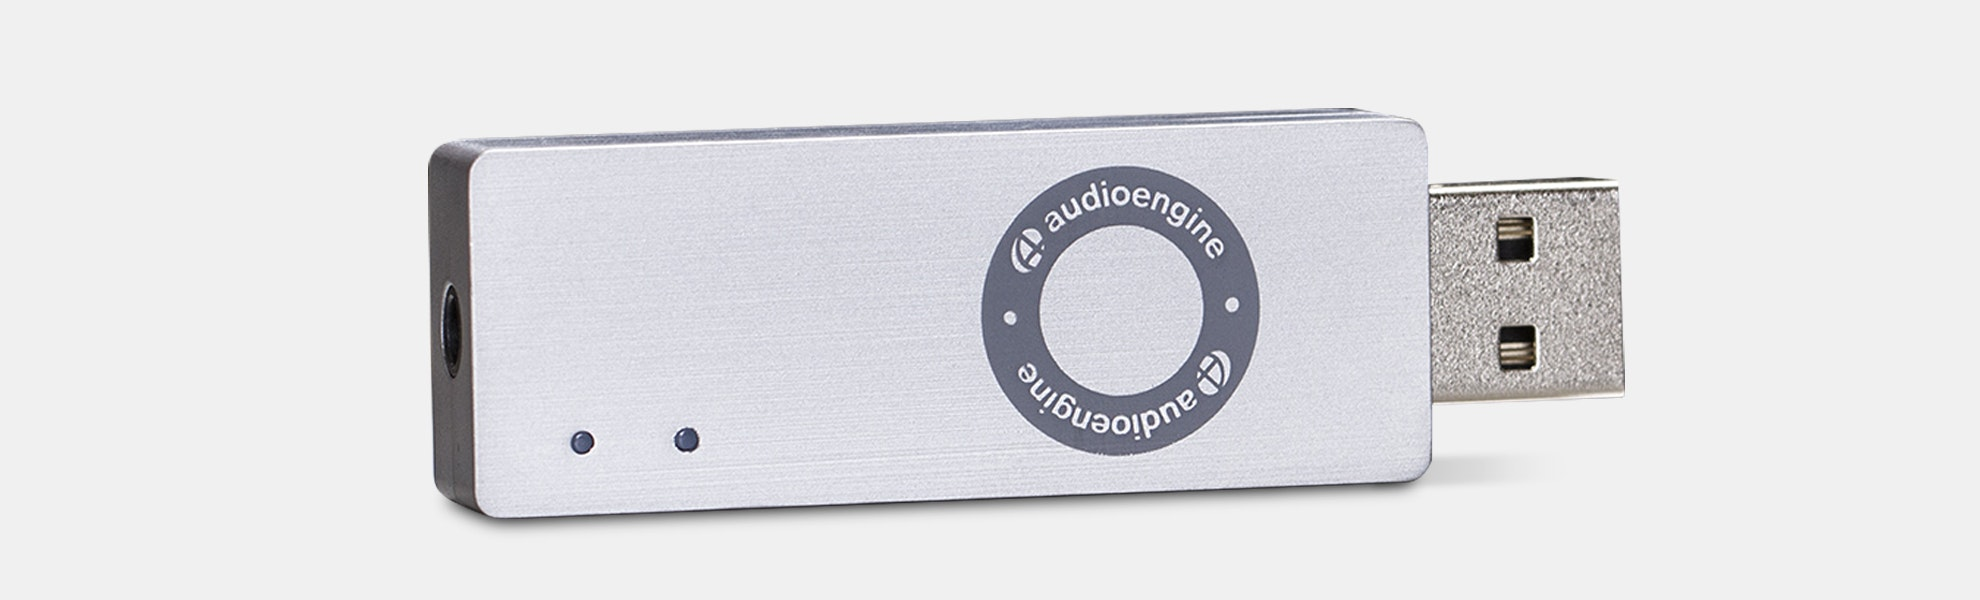 Audioengine D3 Portable DAC/Amp